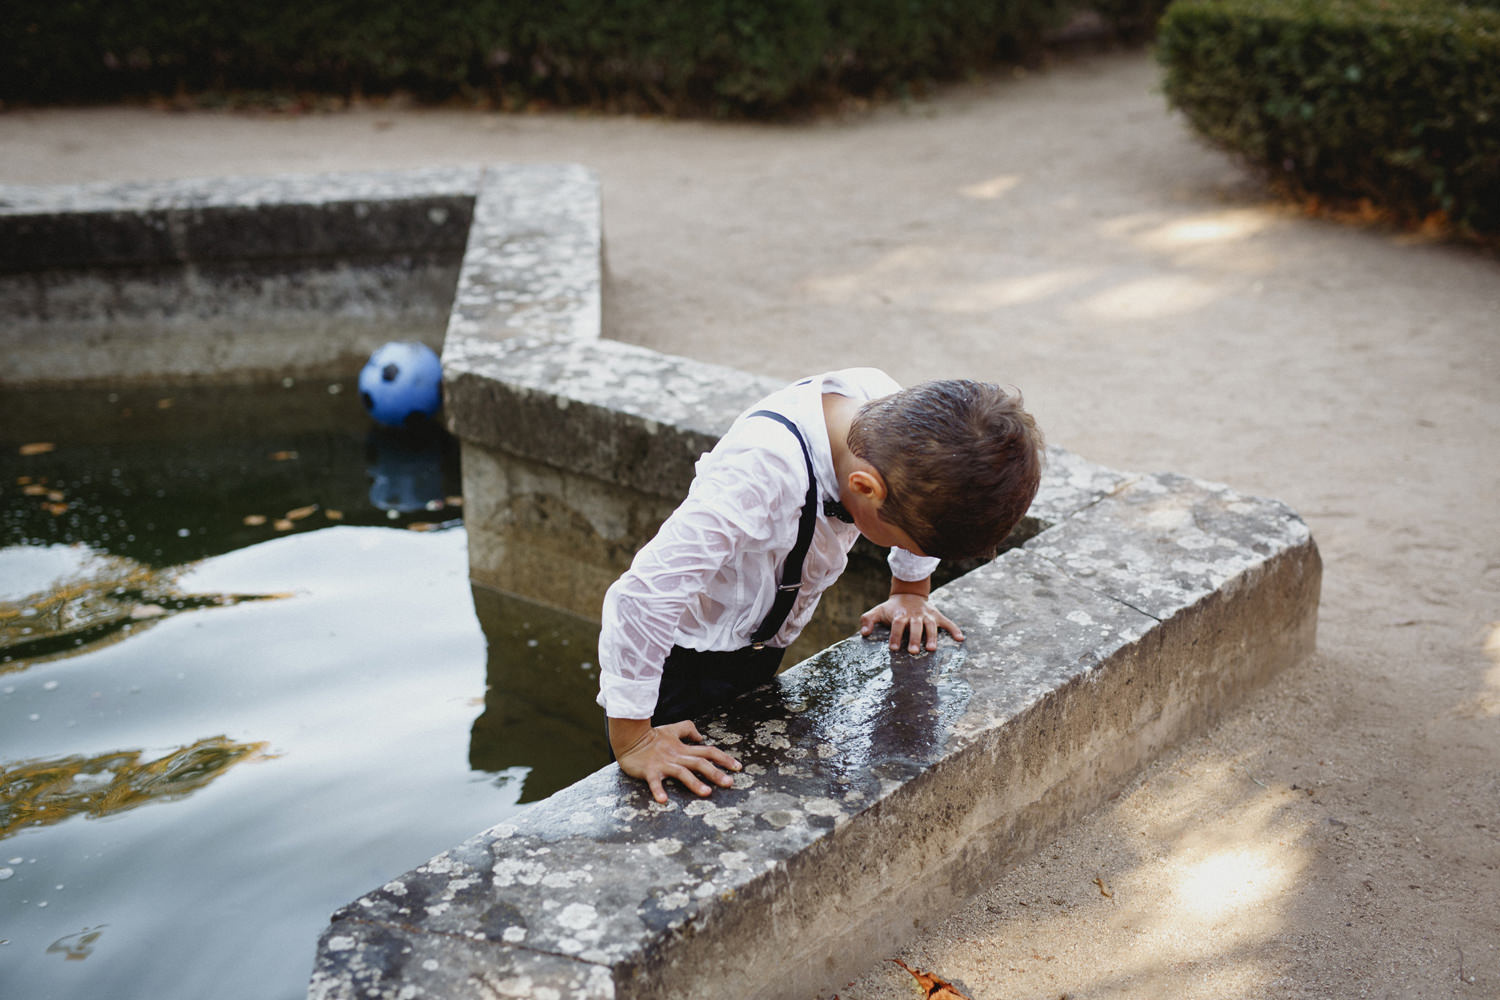 couples son fell into the fountain at palaci marques fronteira wedding